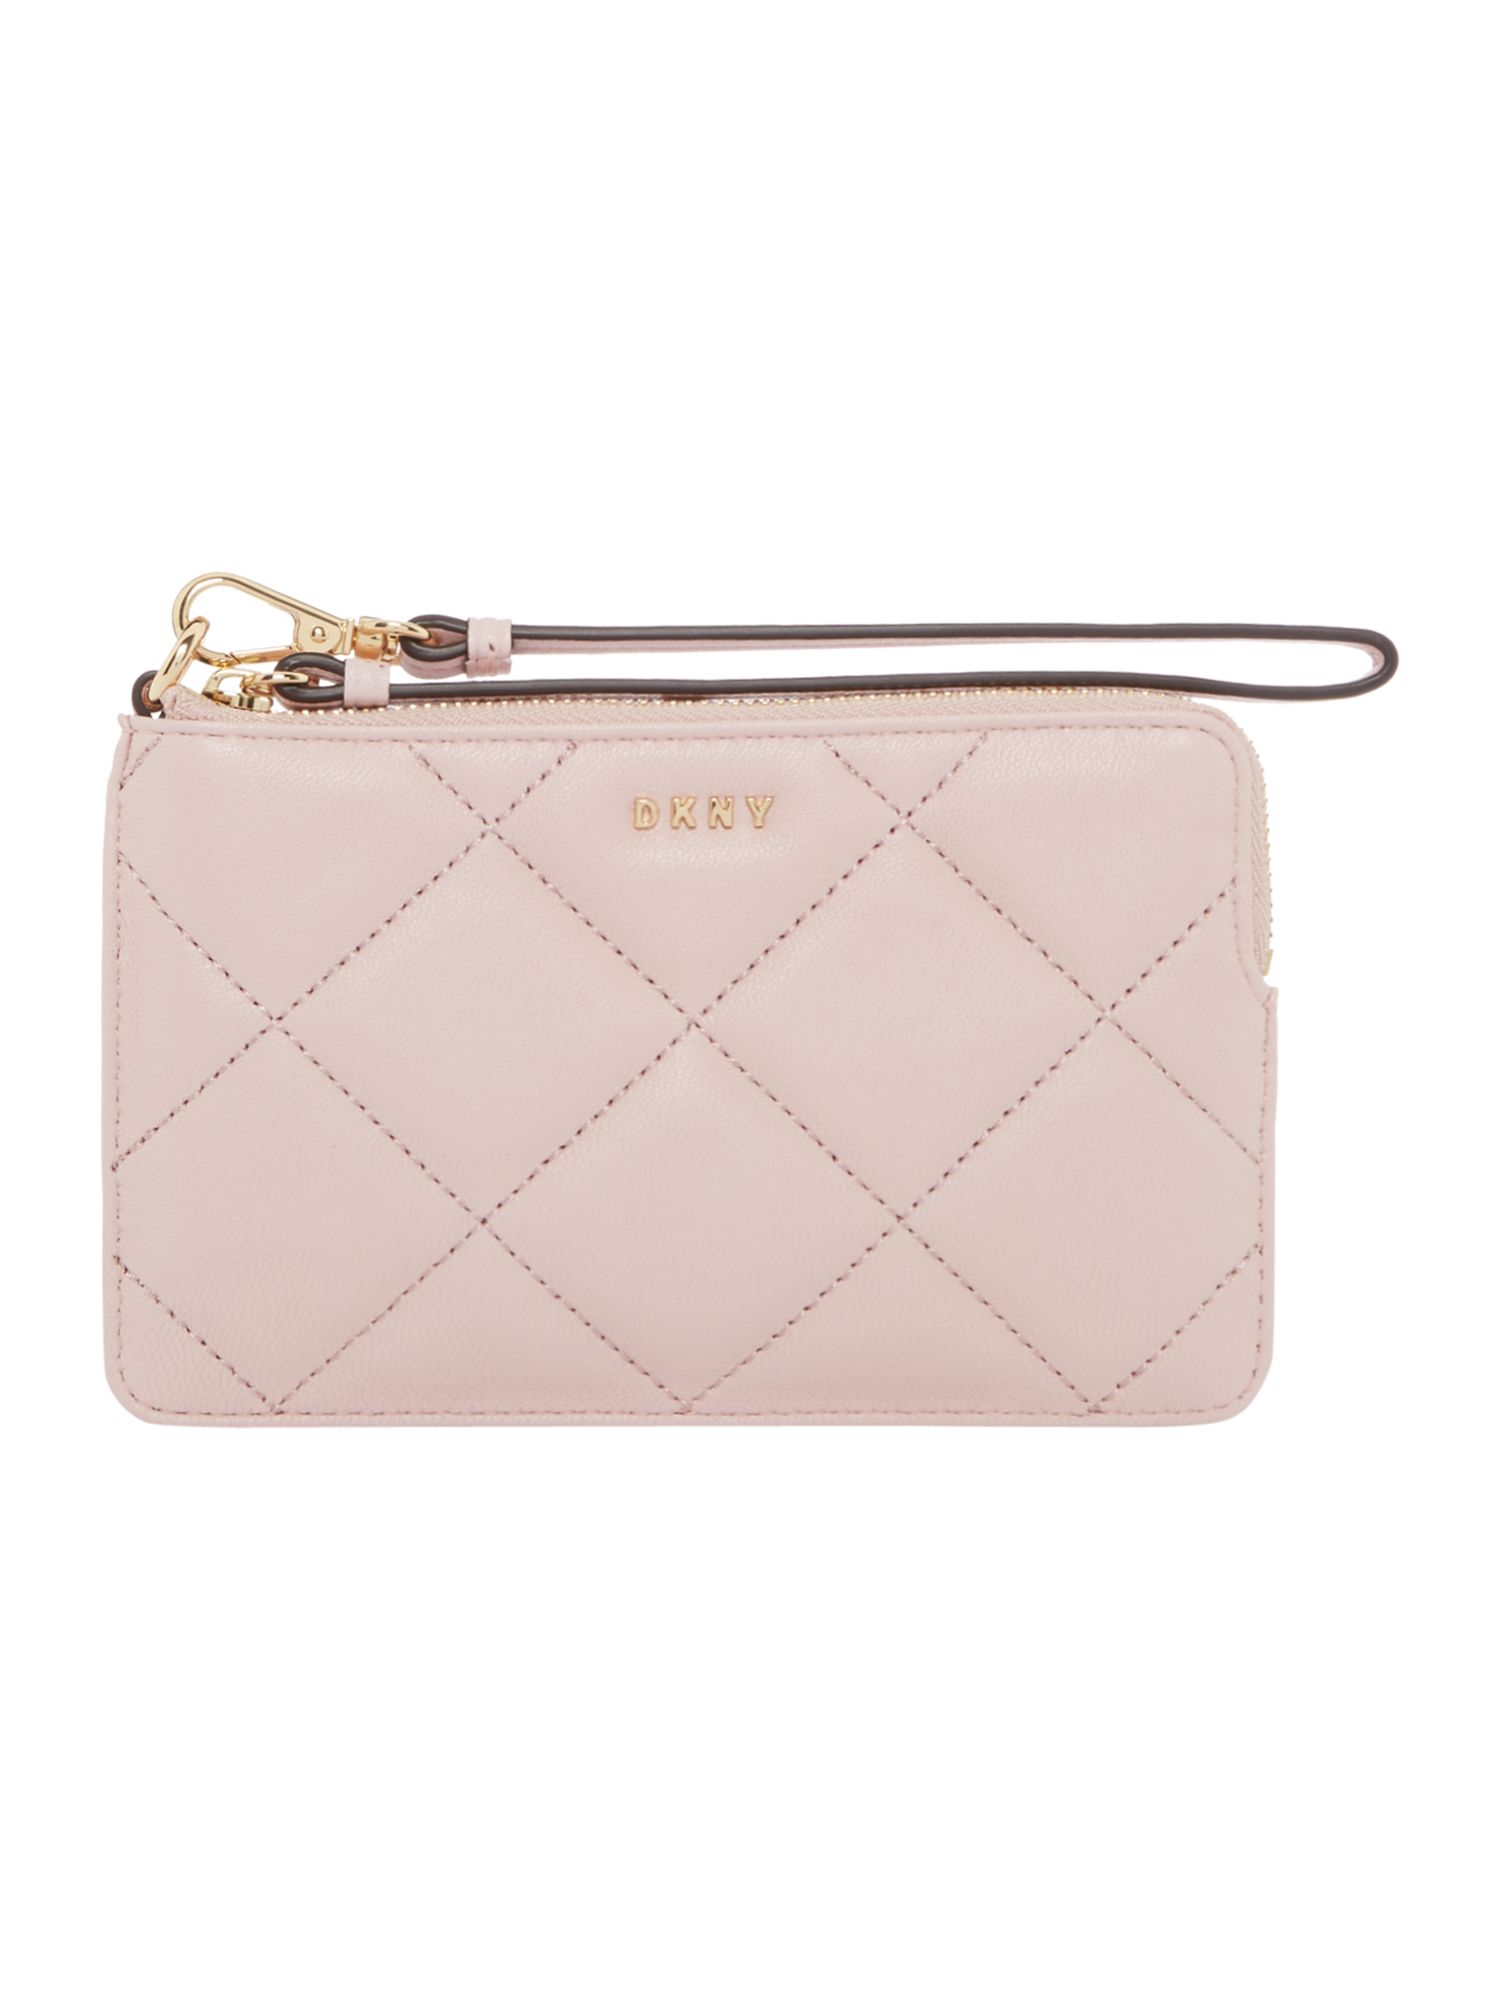 DKNY Barbara small zip around purse, Pink